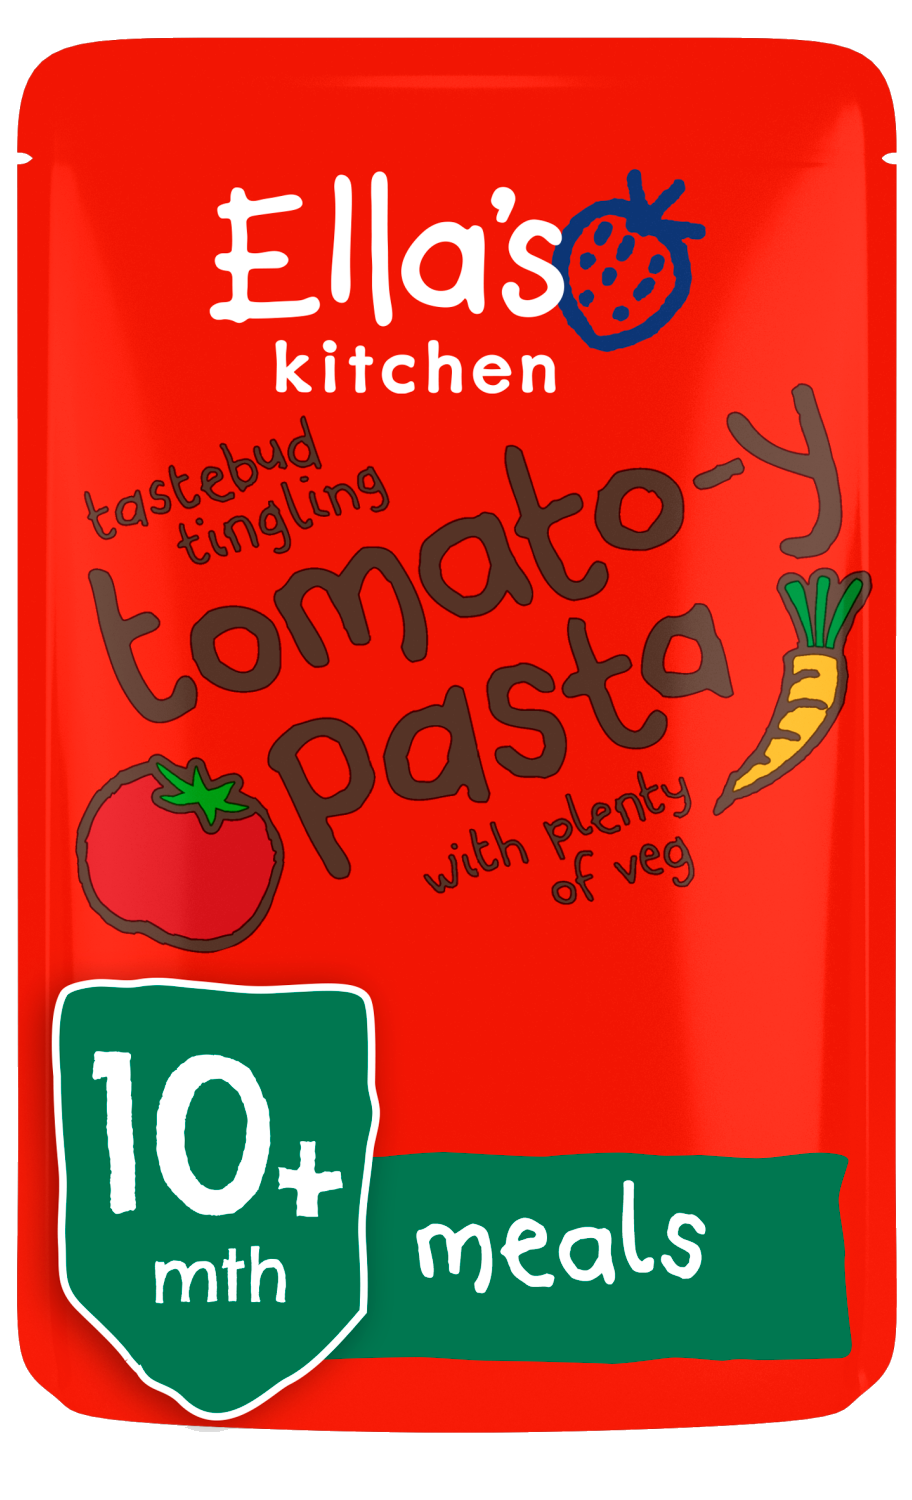 Ellas kitchen tomatoy pasta veg pouch 10 months front of pack O